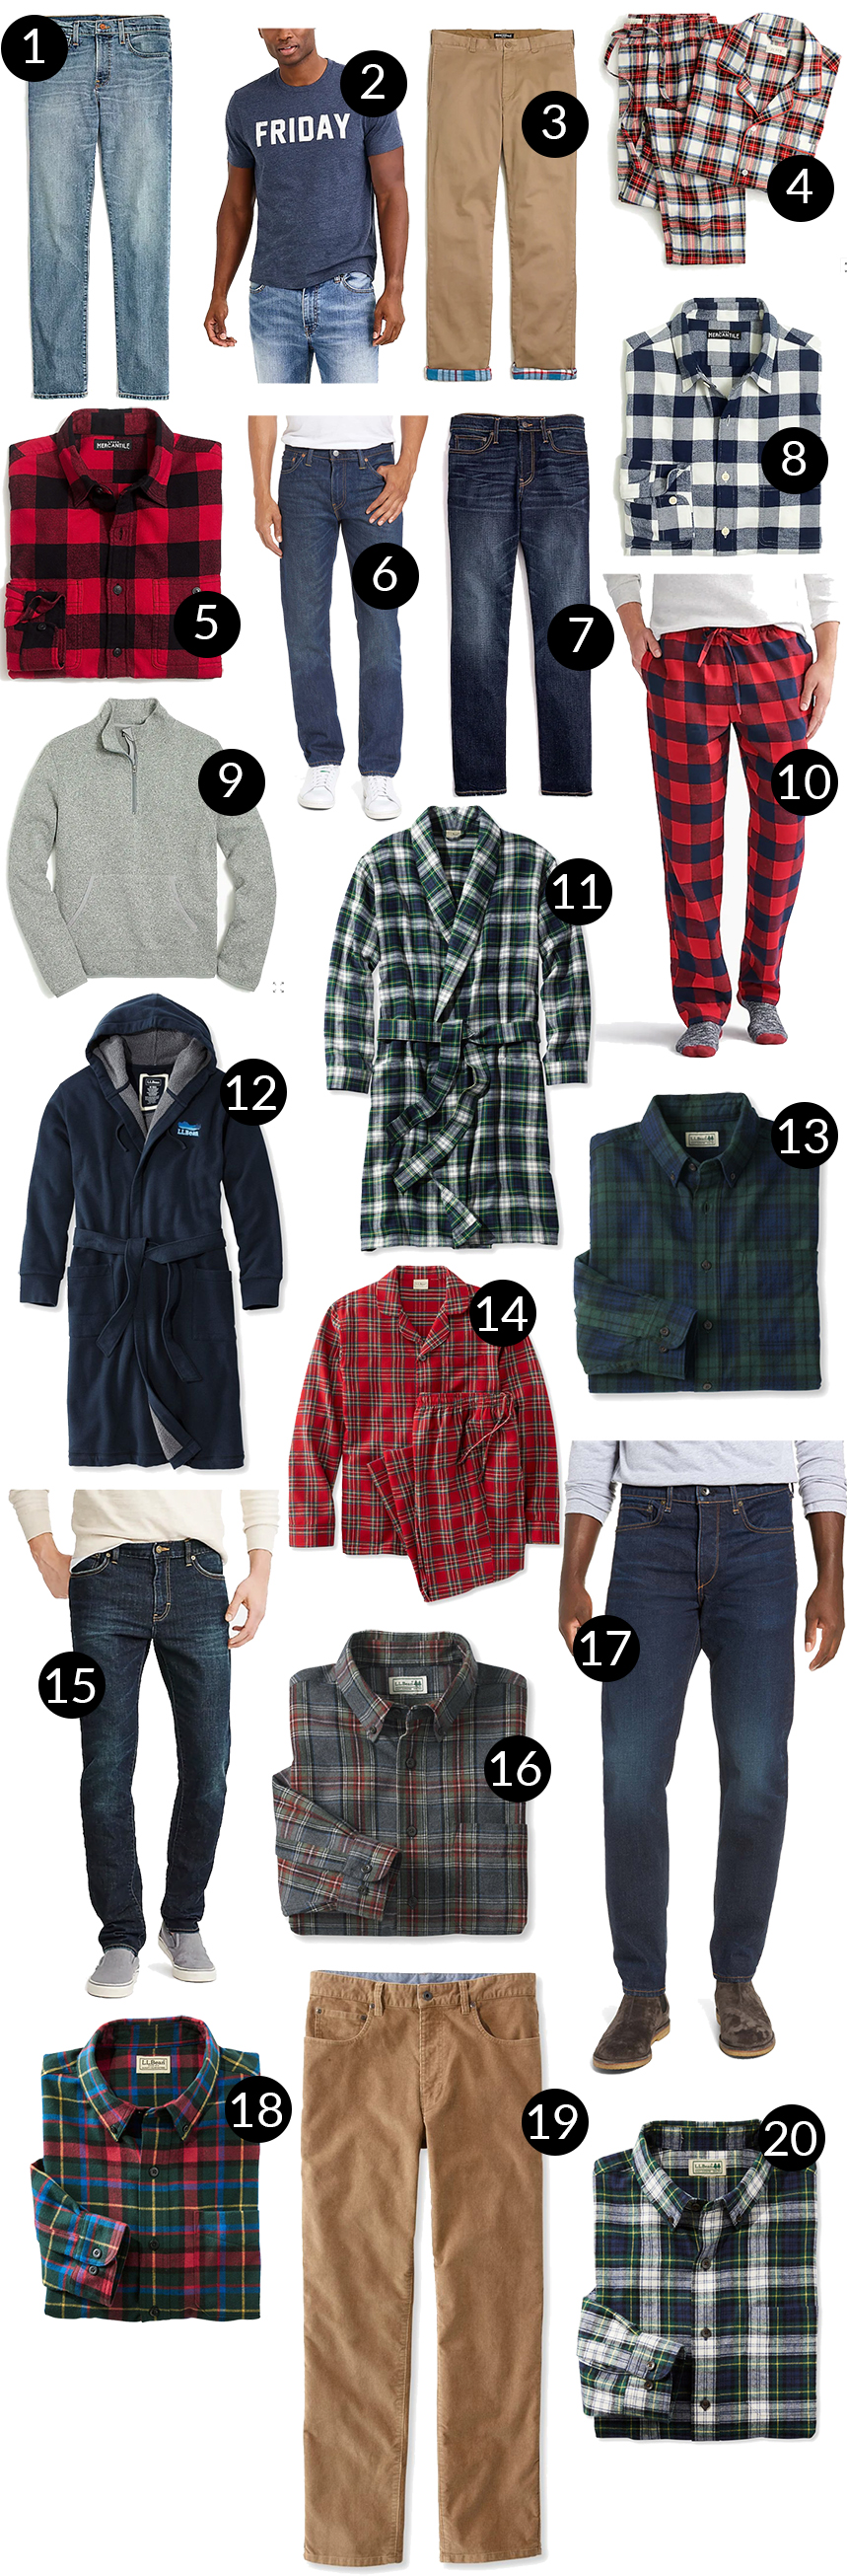 Mens Holiday Gift Guide - Shirts and Pants